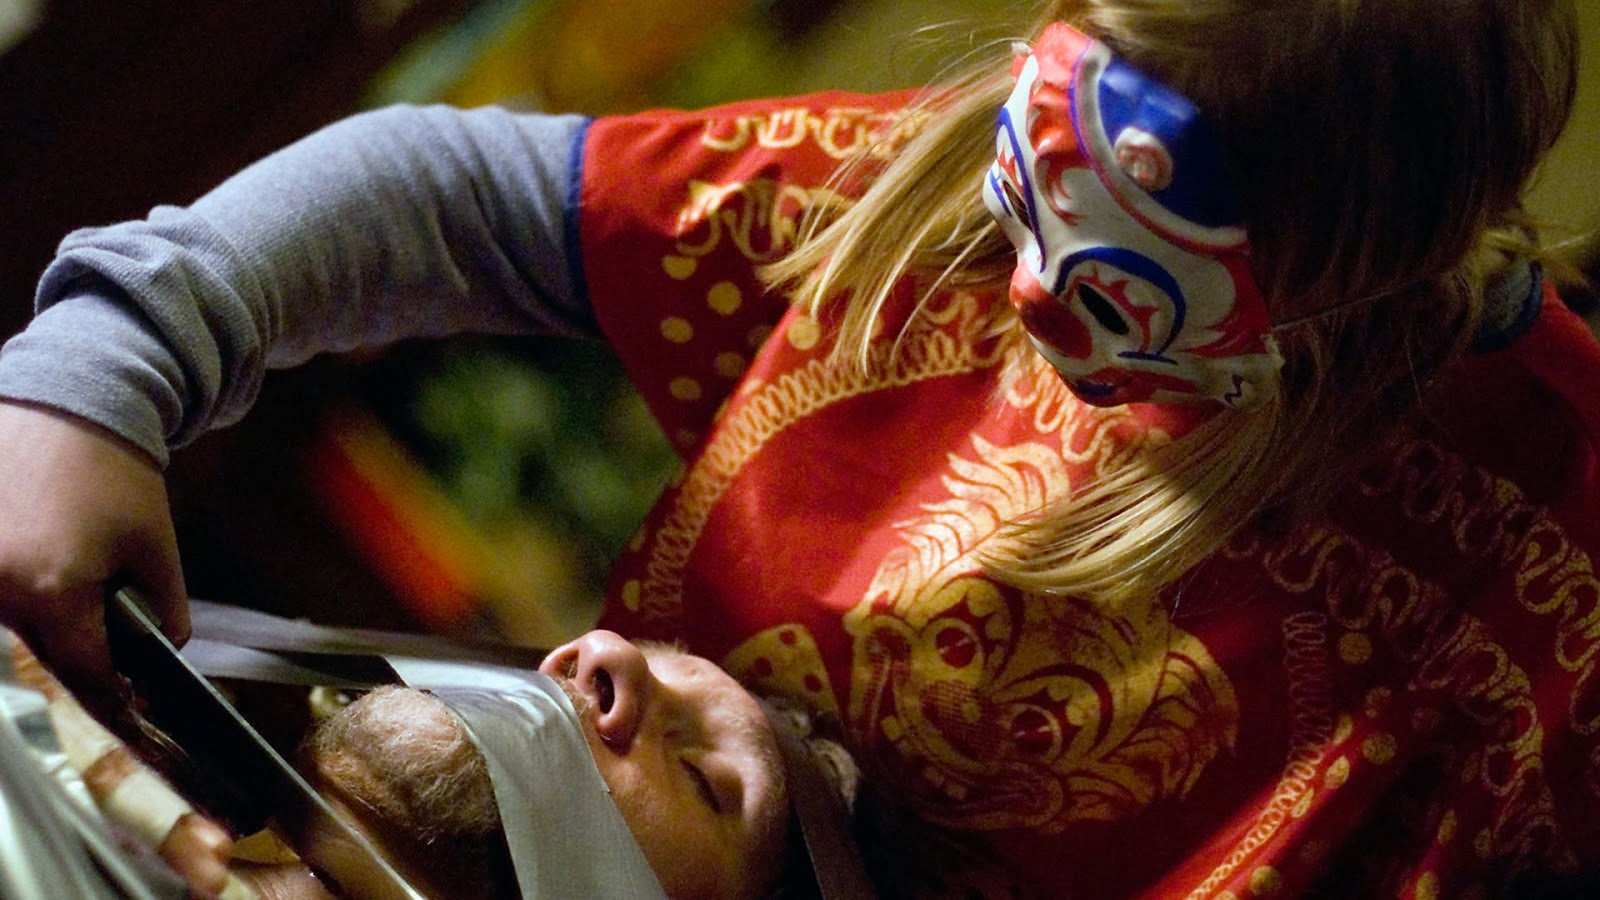 ... Backstory Remove All Fear From Horror Movies? - Horror Film Central